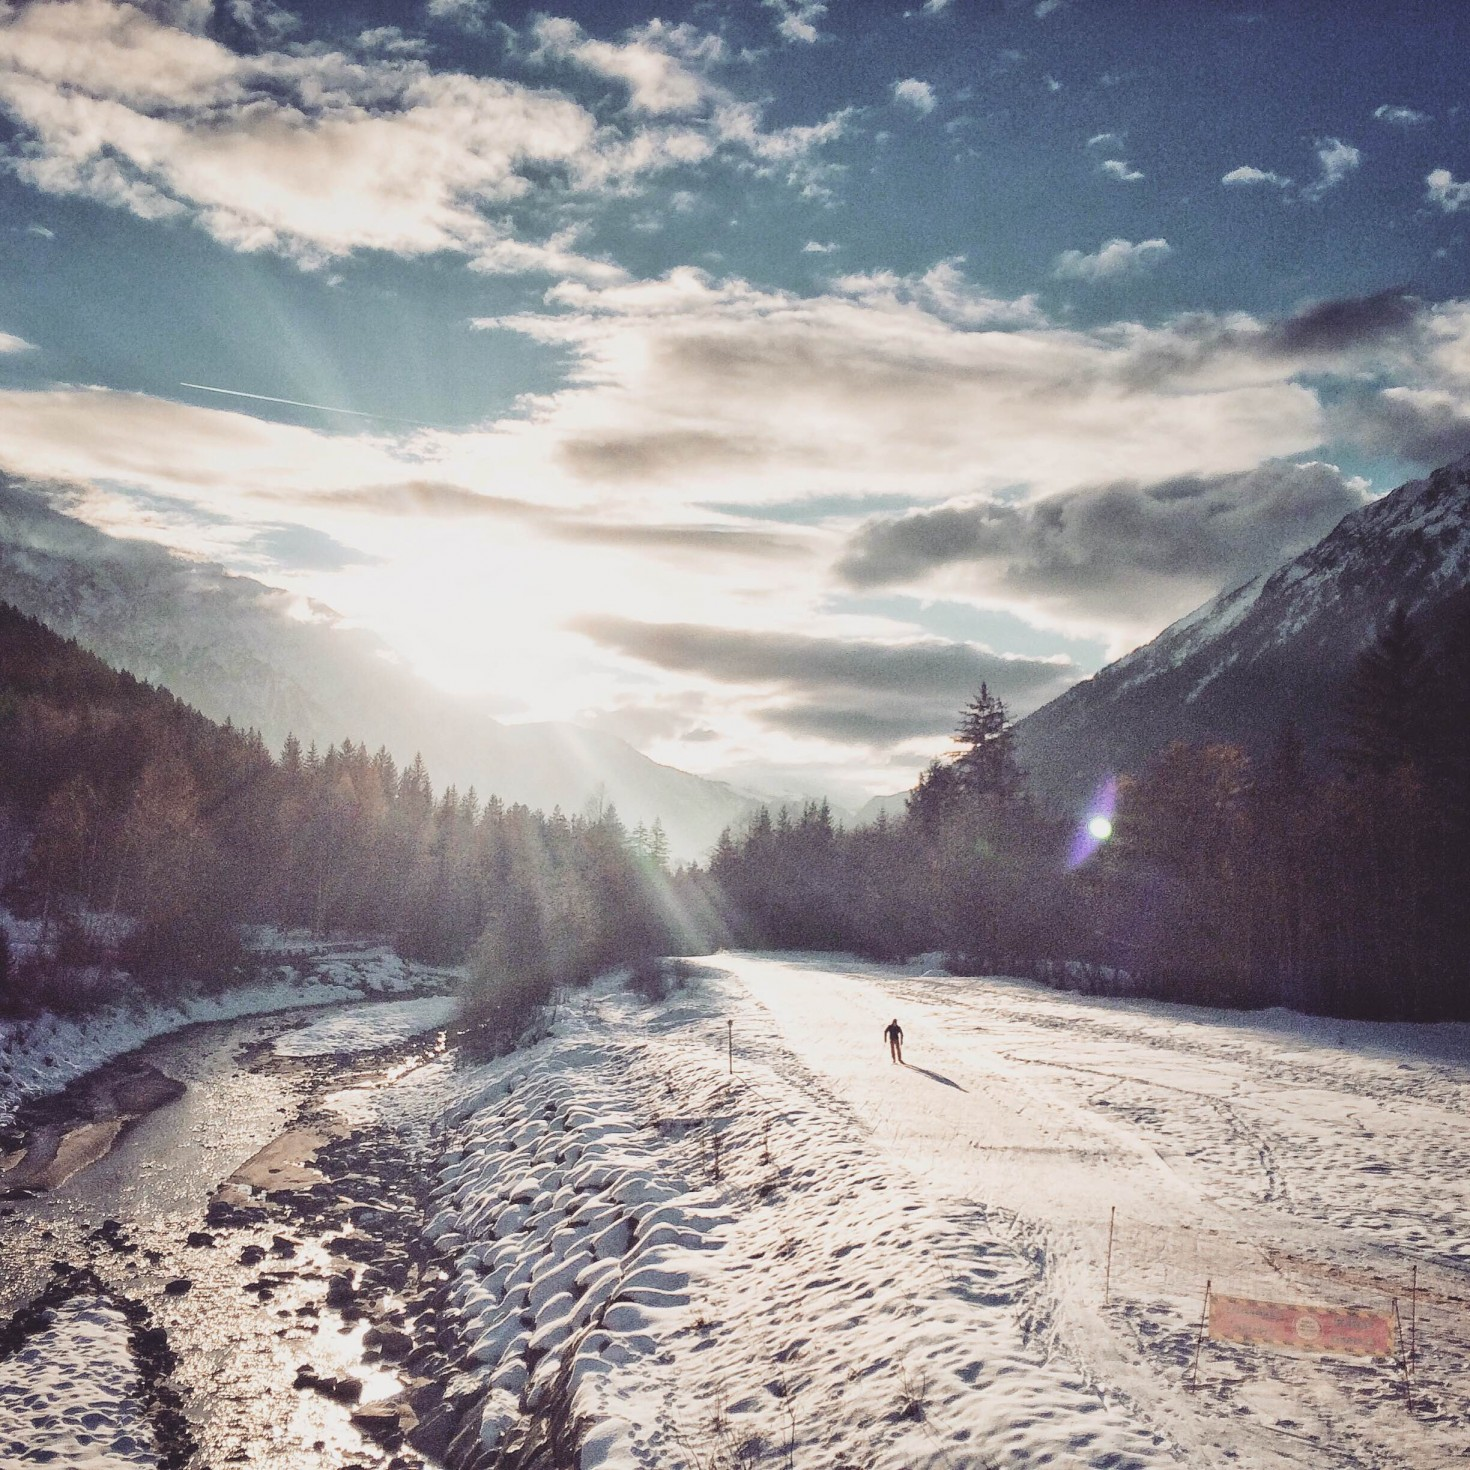 Chamonix cross country skiing by the river